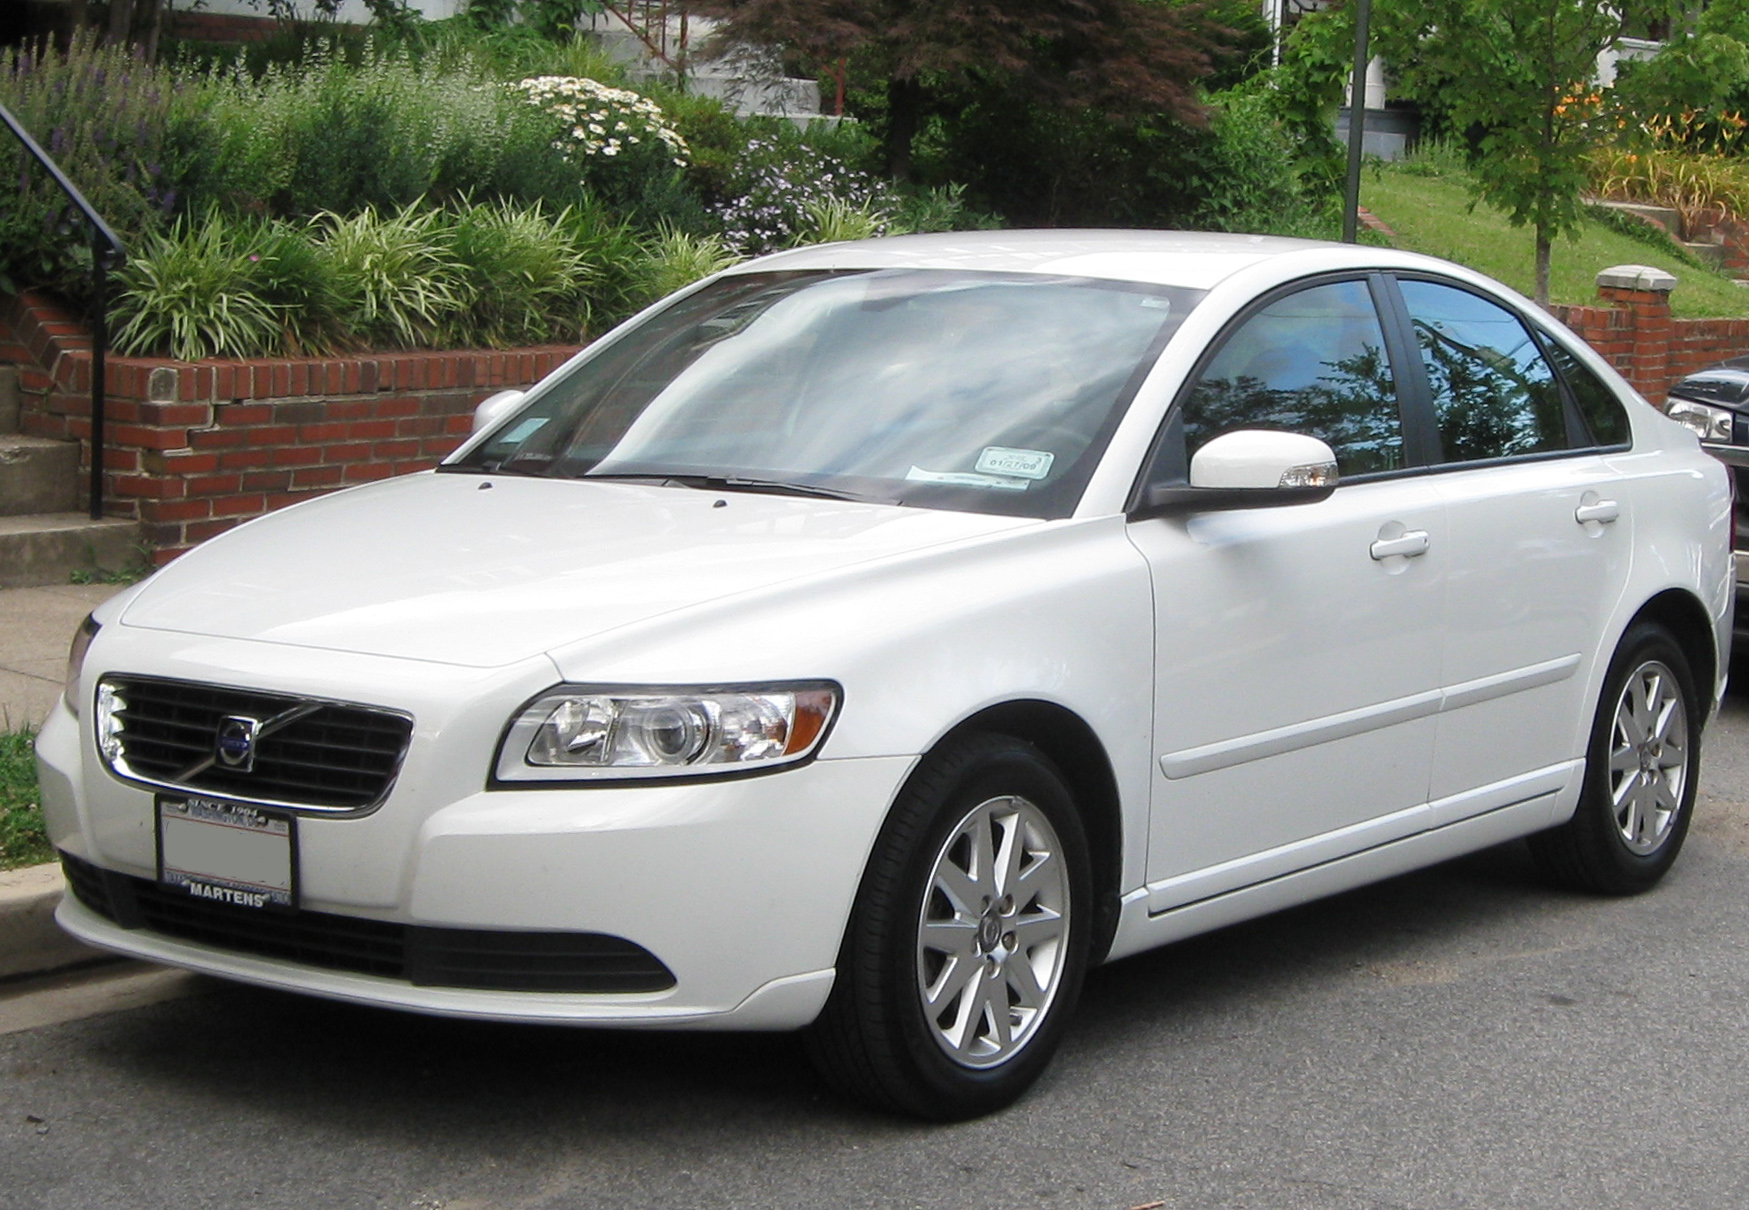 volvo s40 wikipedia. Black Bedroom Furniture Sets. Home Design Ideas